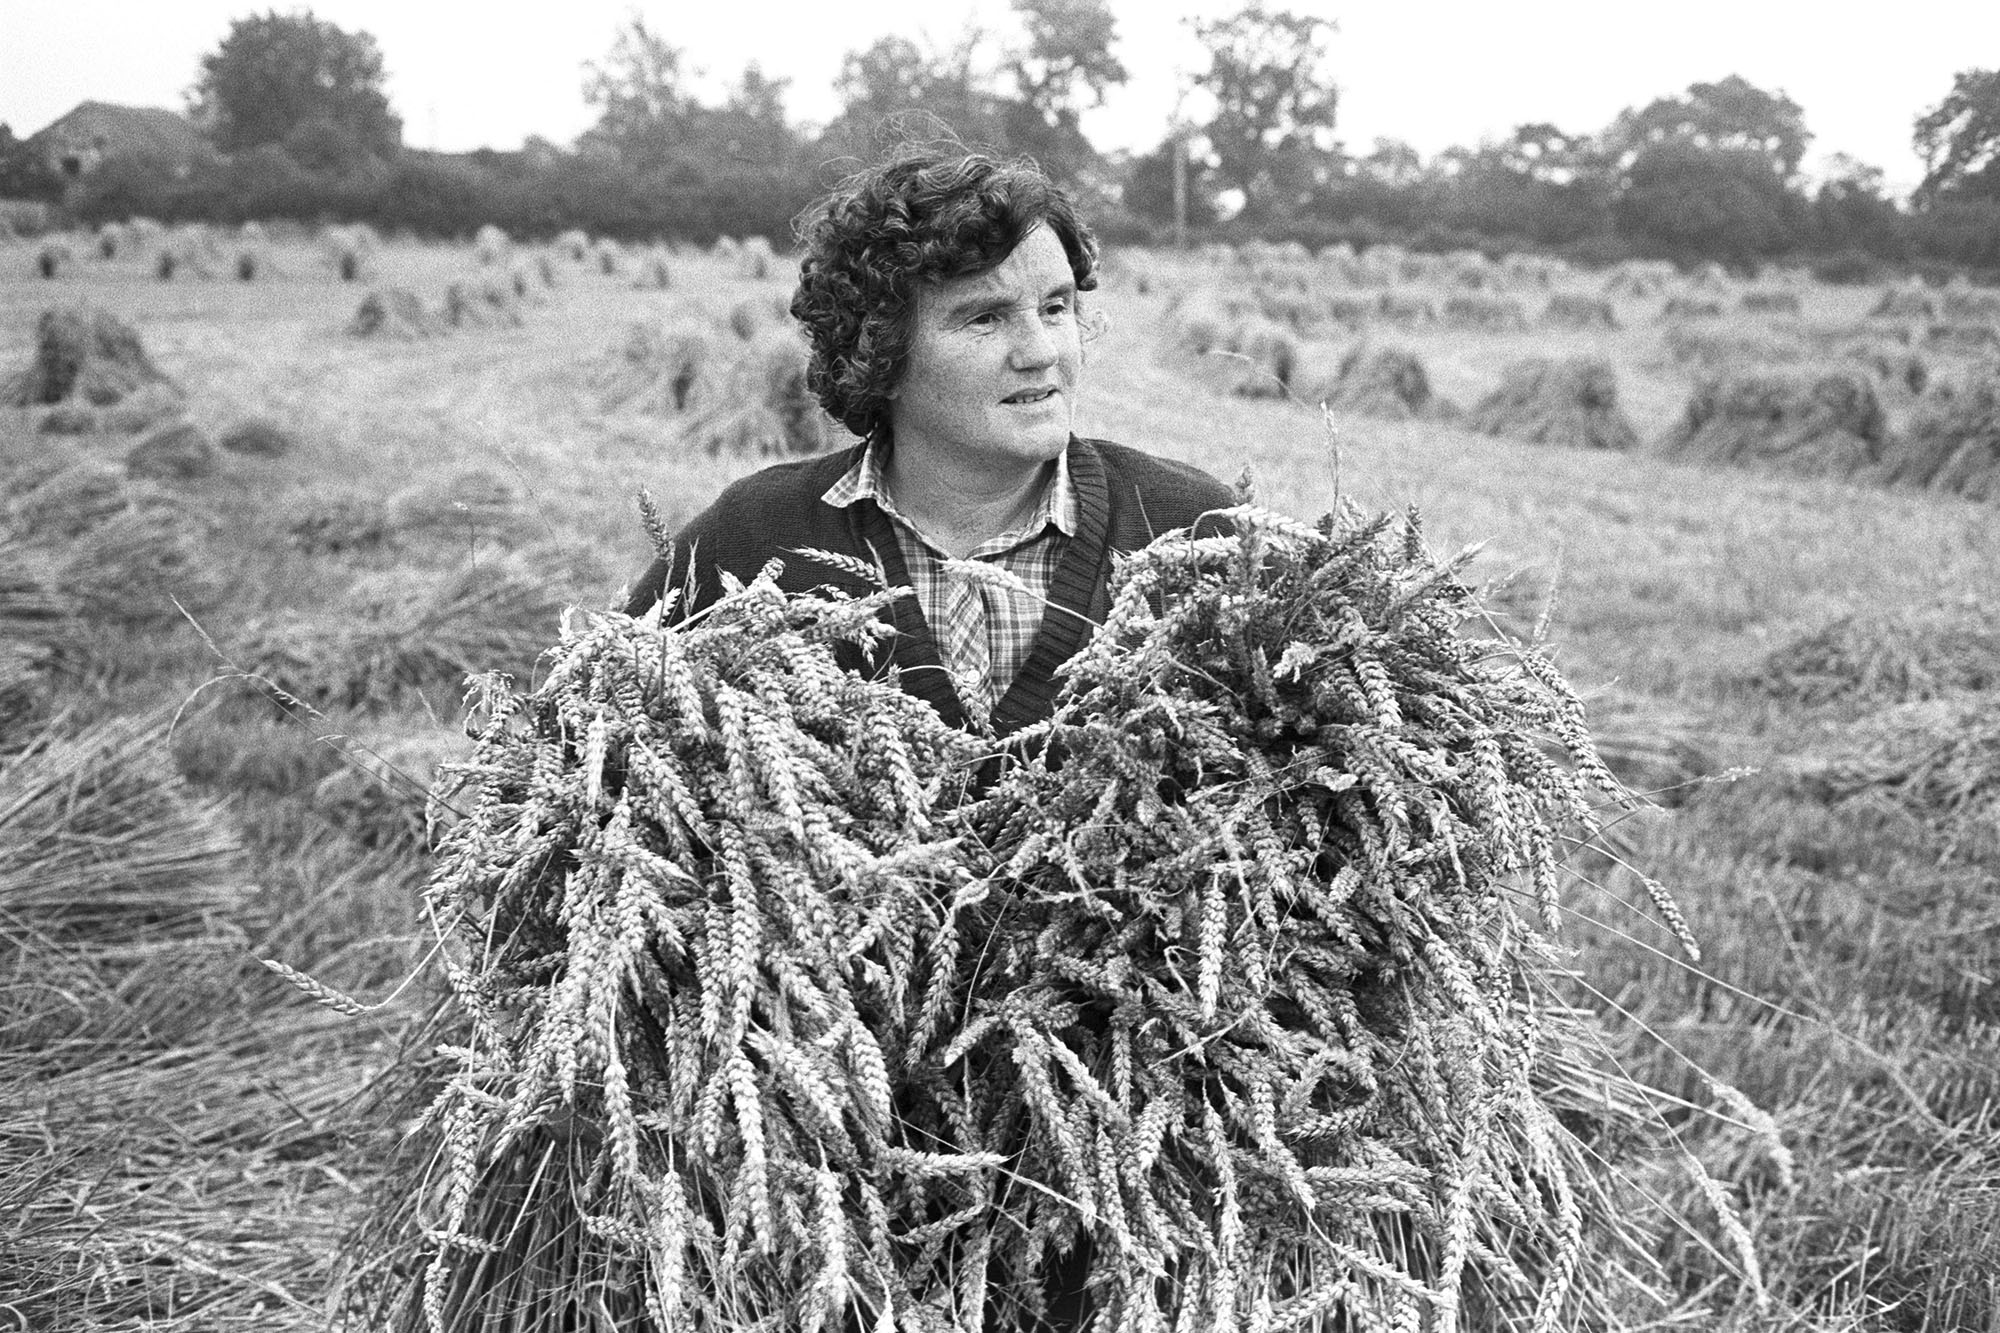 Farmers, woman holding sheaf of corn, setting up stooks. <br /> [Eileen Squire holding sheaves of corn to set up as stooks in a field at Chapple, Dolton. Other stooks are visible in the background.]